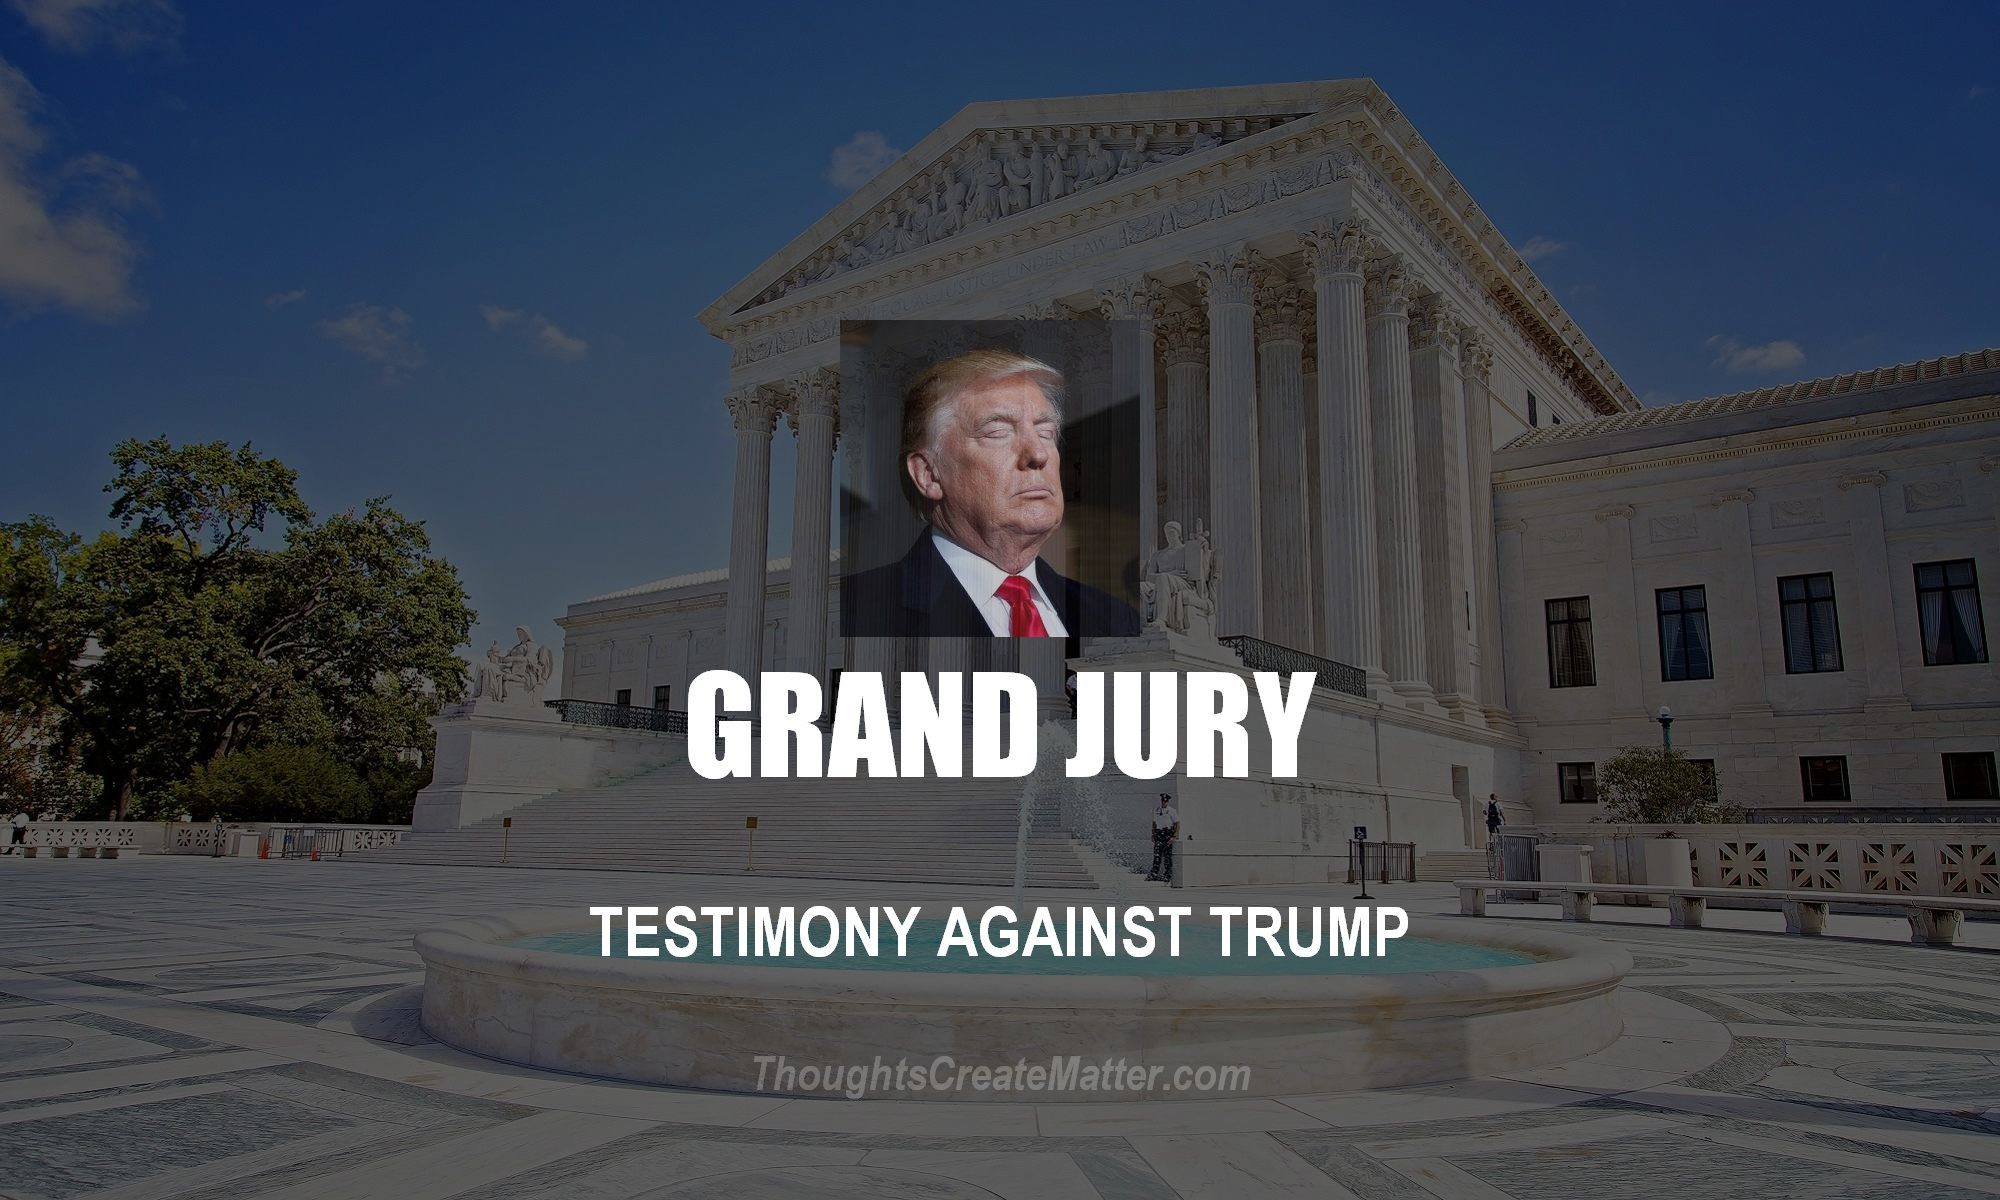 Supreme Court of the US depicts need for grand jury testimony against trump. Did Allen Weisselberg flip on Trump. Find out here.